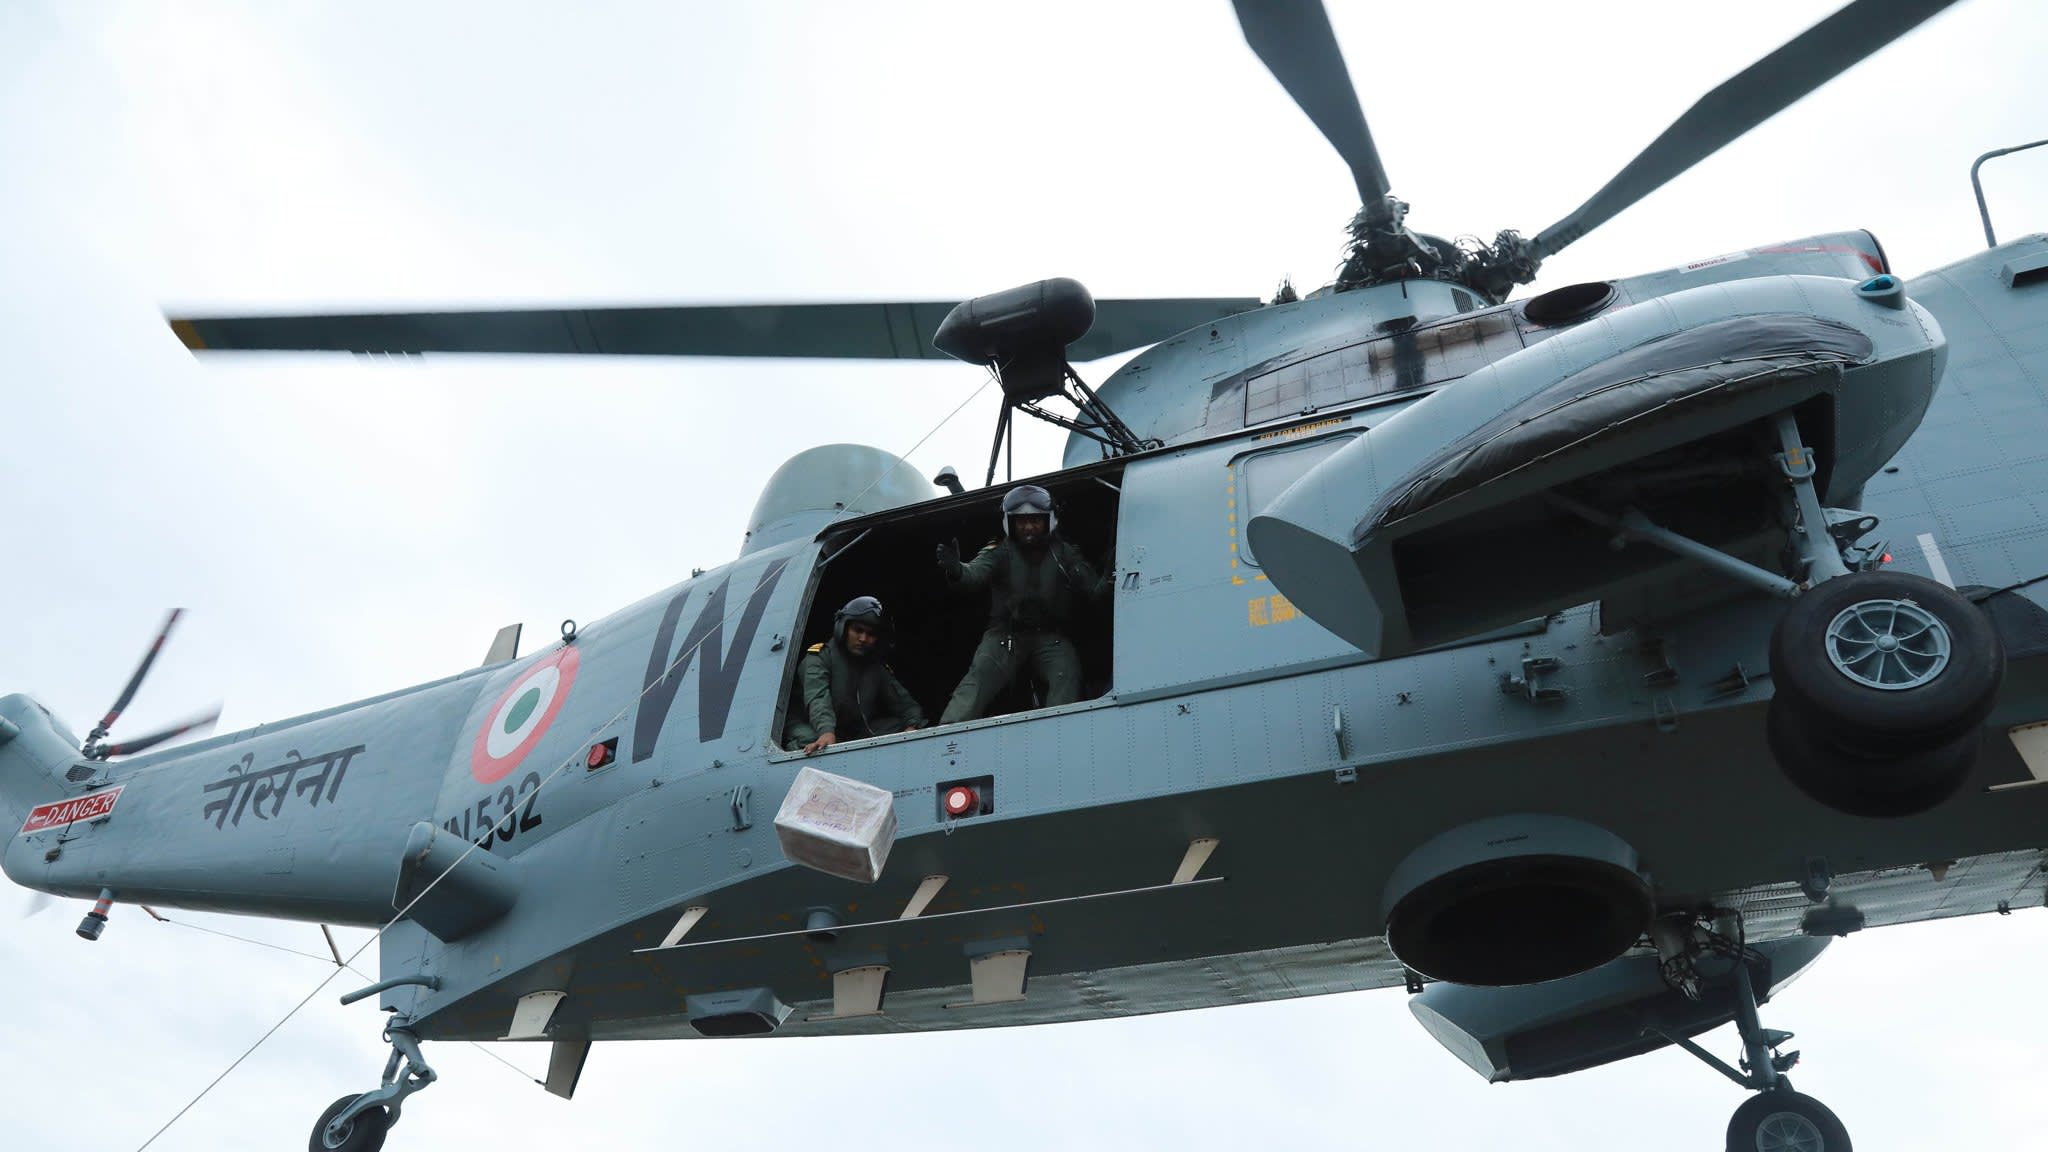 India approves $6bn military spend as Asian arms race escalates